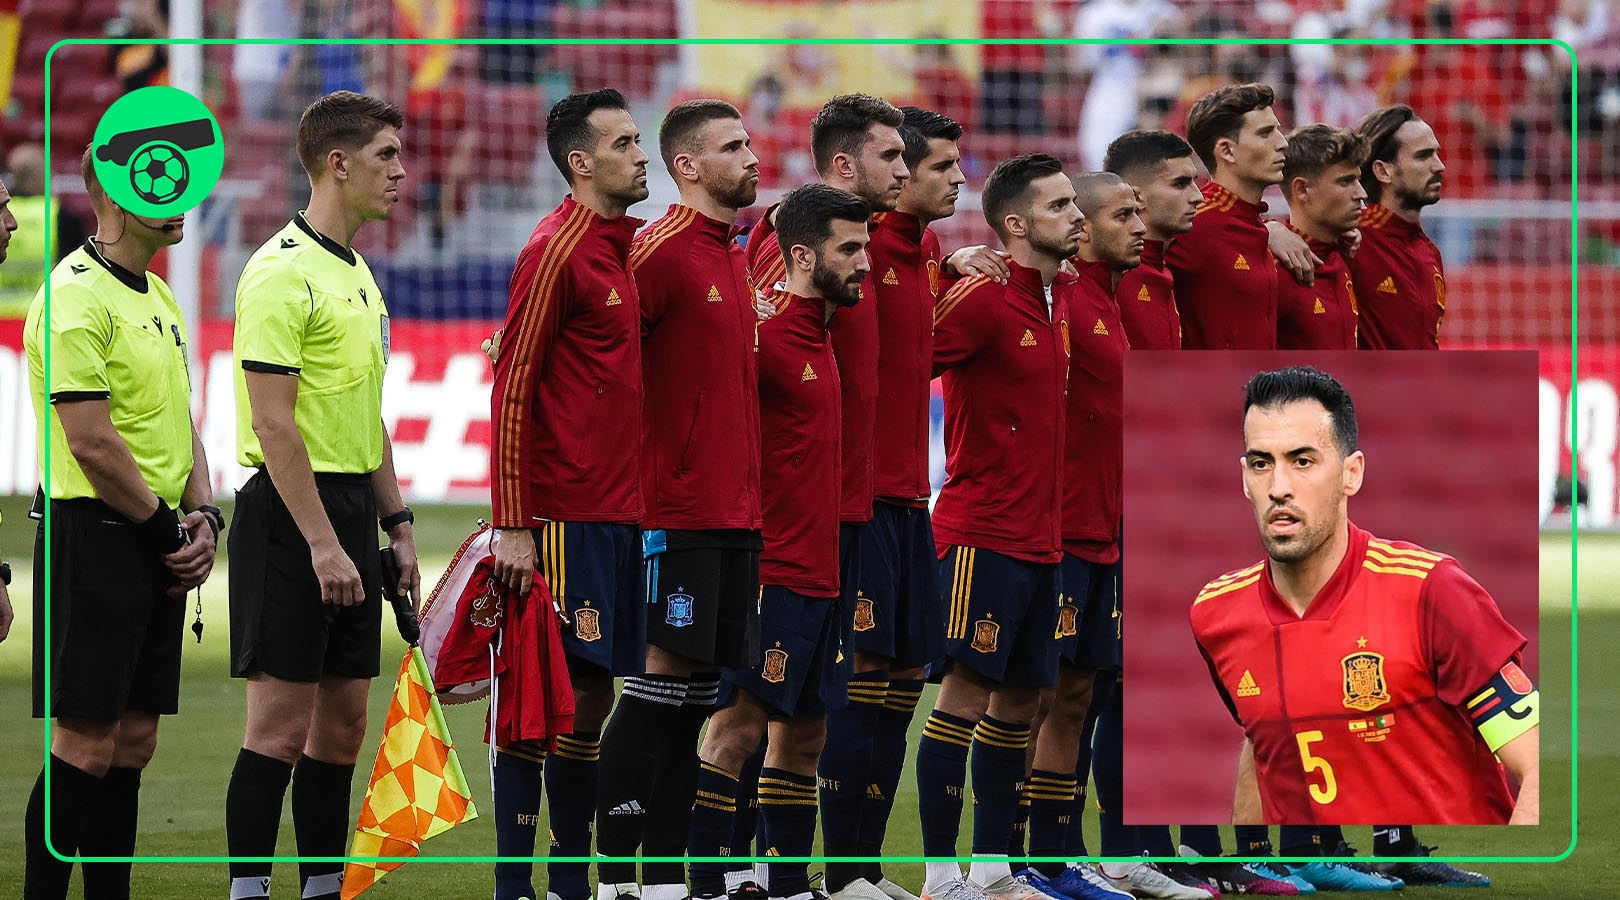 Spain's Captain Sergio Busquets tested positive for COVID-19